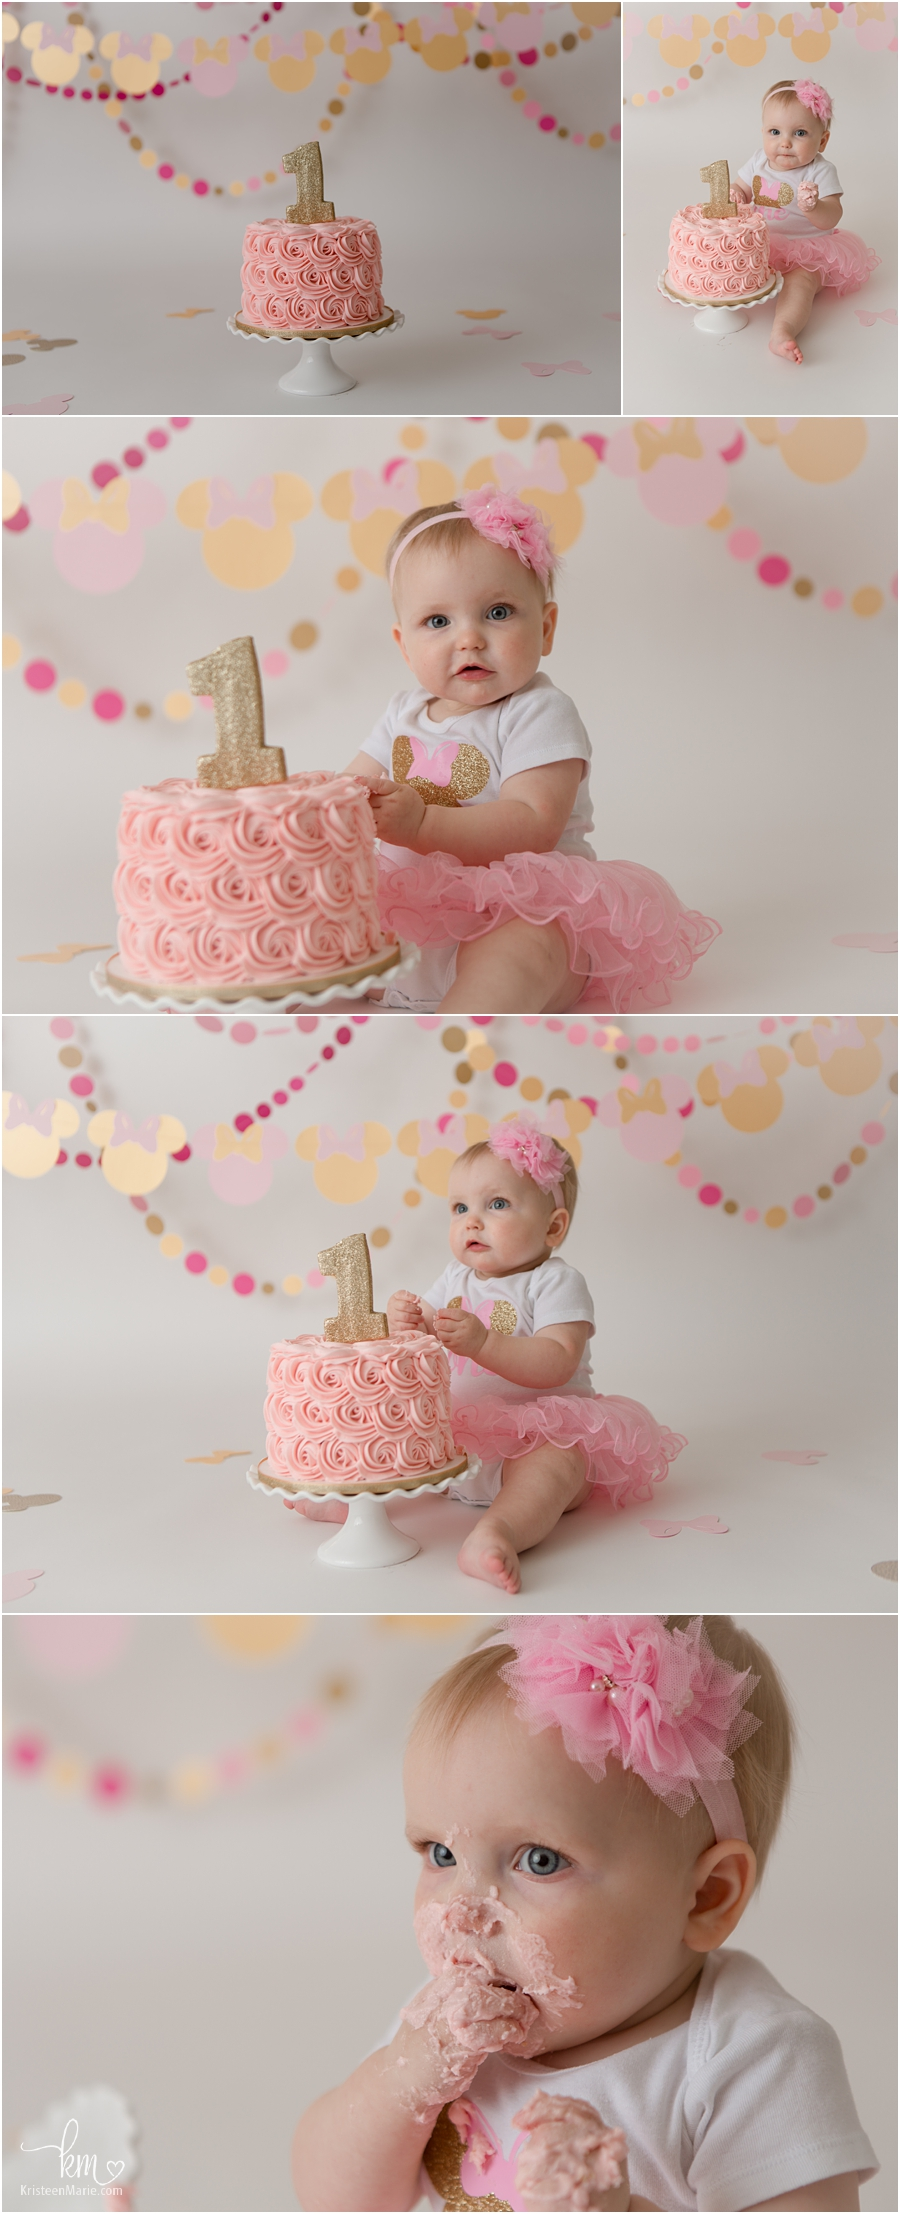 Minnie Mouse Cake Smash Session for first birthday